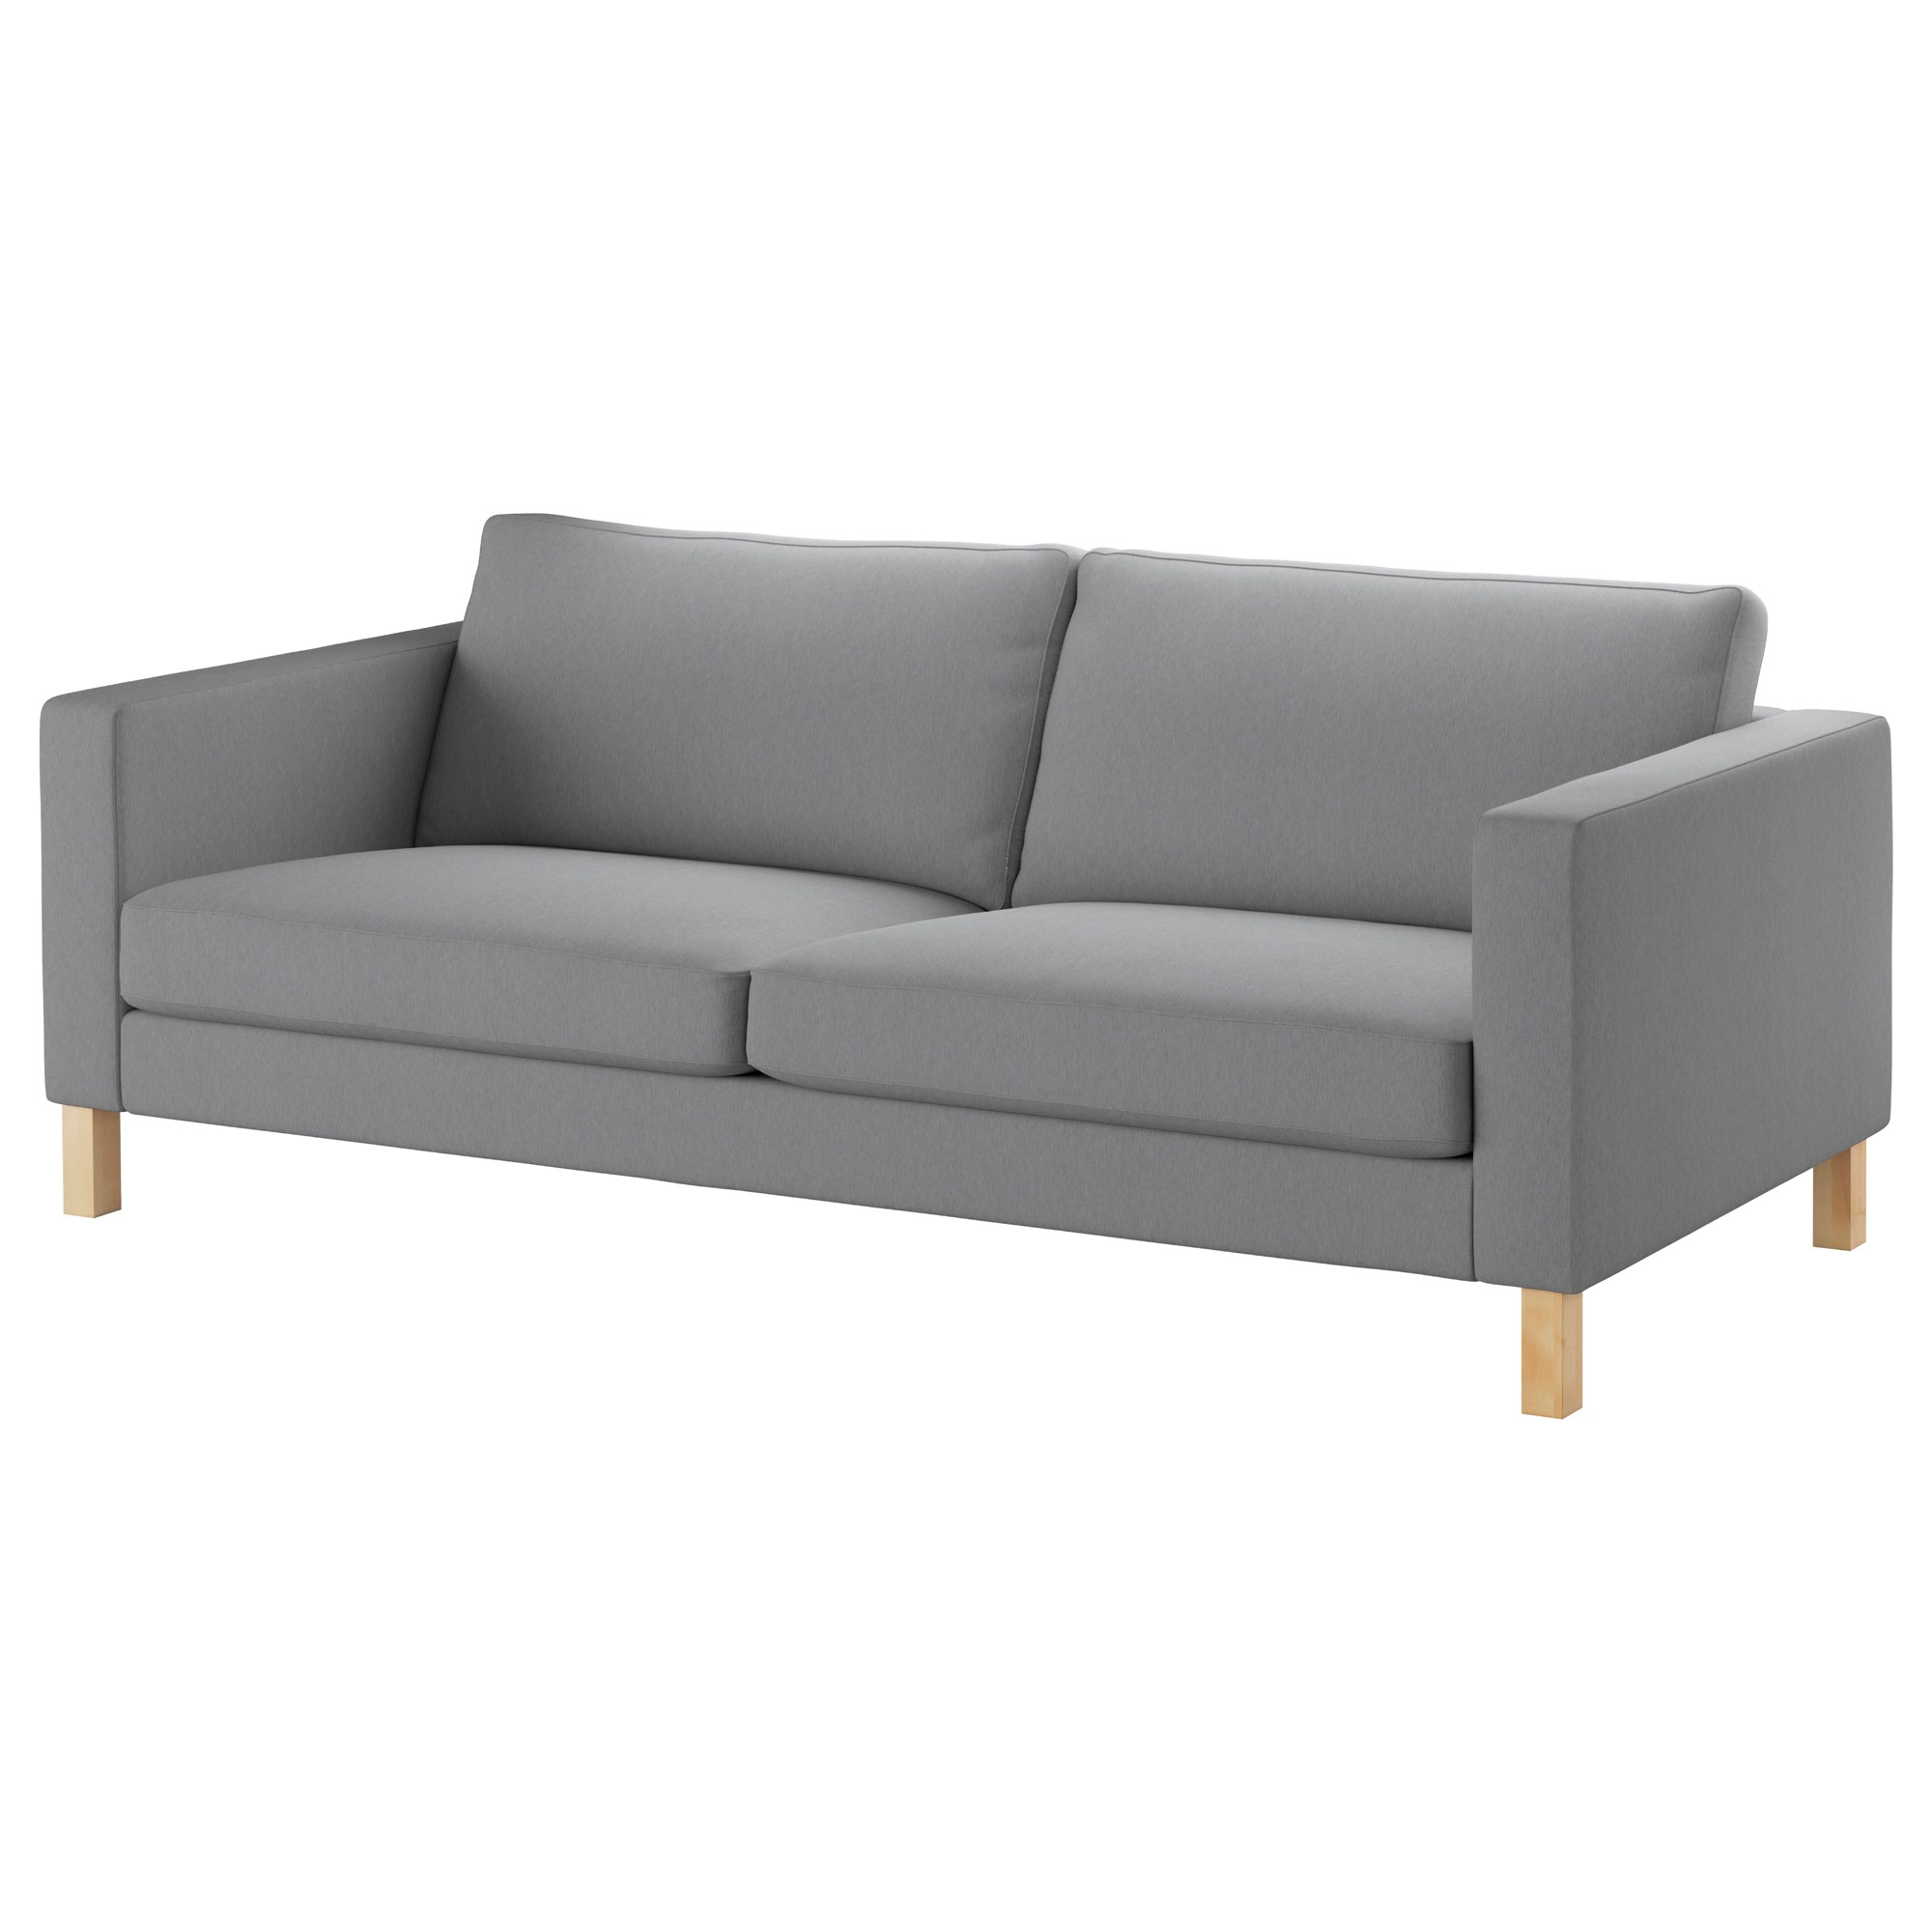 Bettsofa Ikea Neu Karlstad Sofa Knisa Light Gray